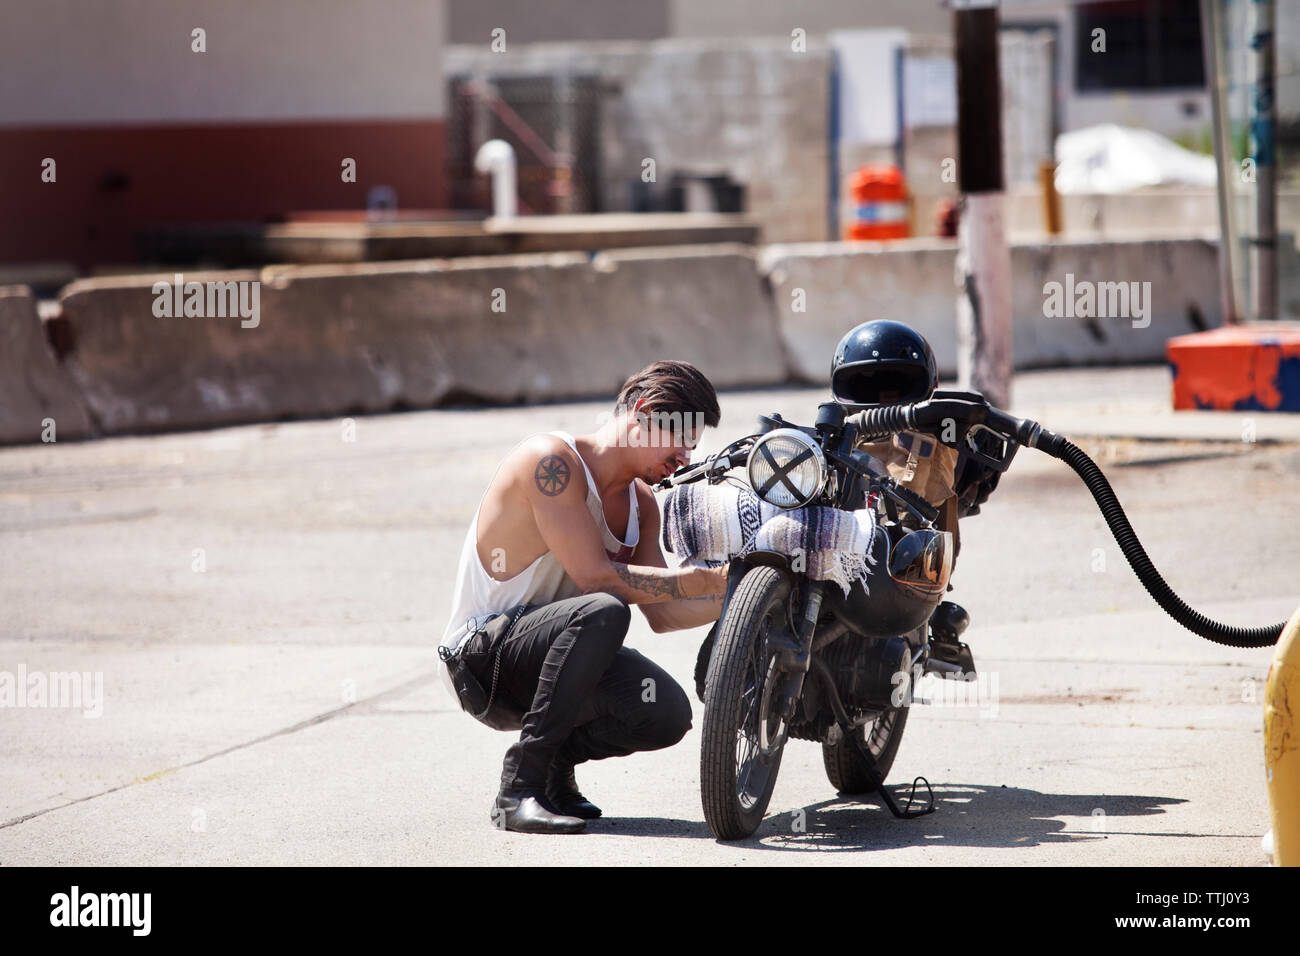 Side view of man refueling fuel in motorcycle at fuel pump - Stock Image